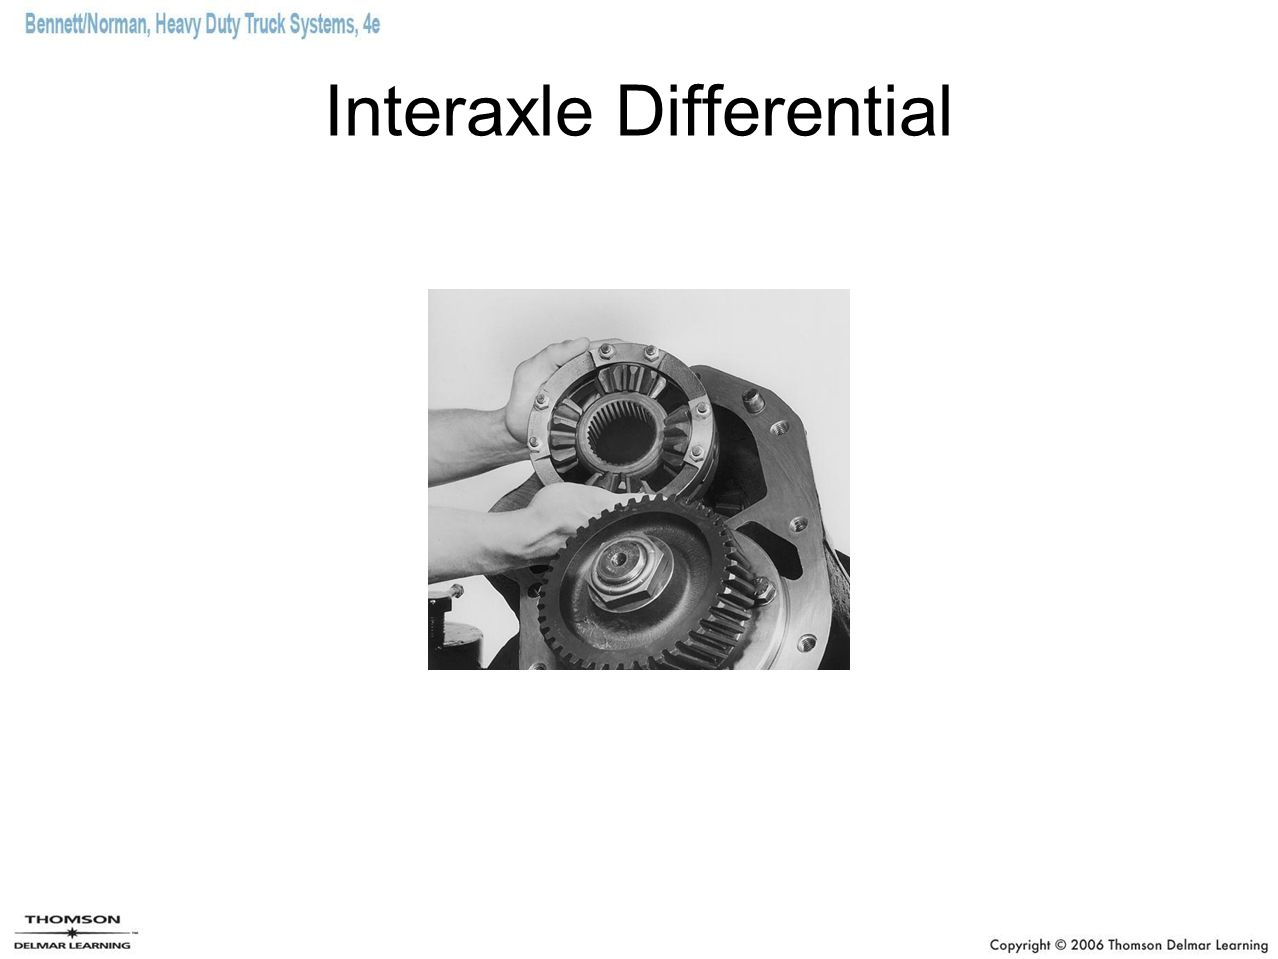 Interaxle Differential